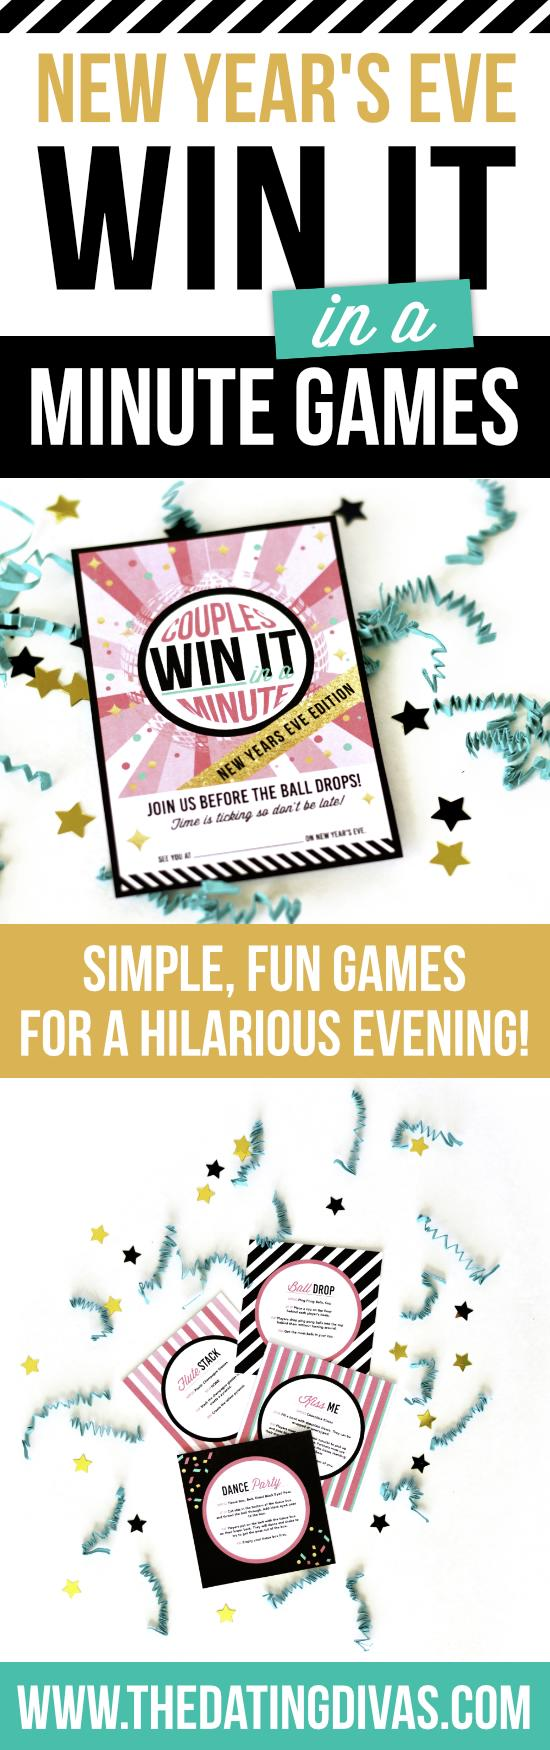 New Year's Eve Edition of Win It in a Minute Games